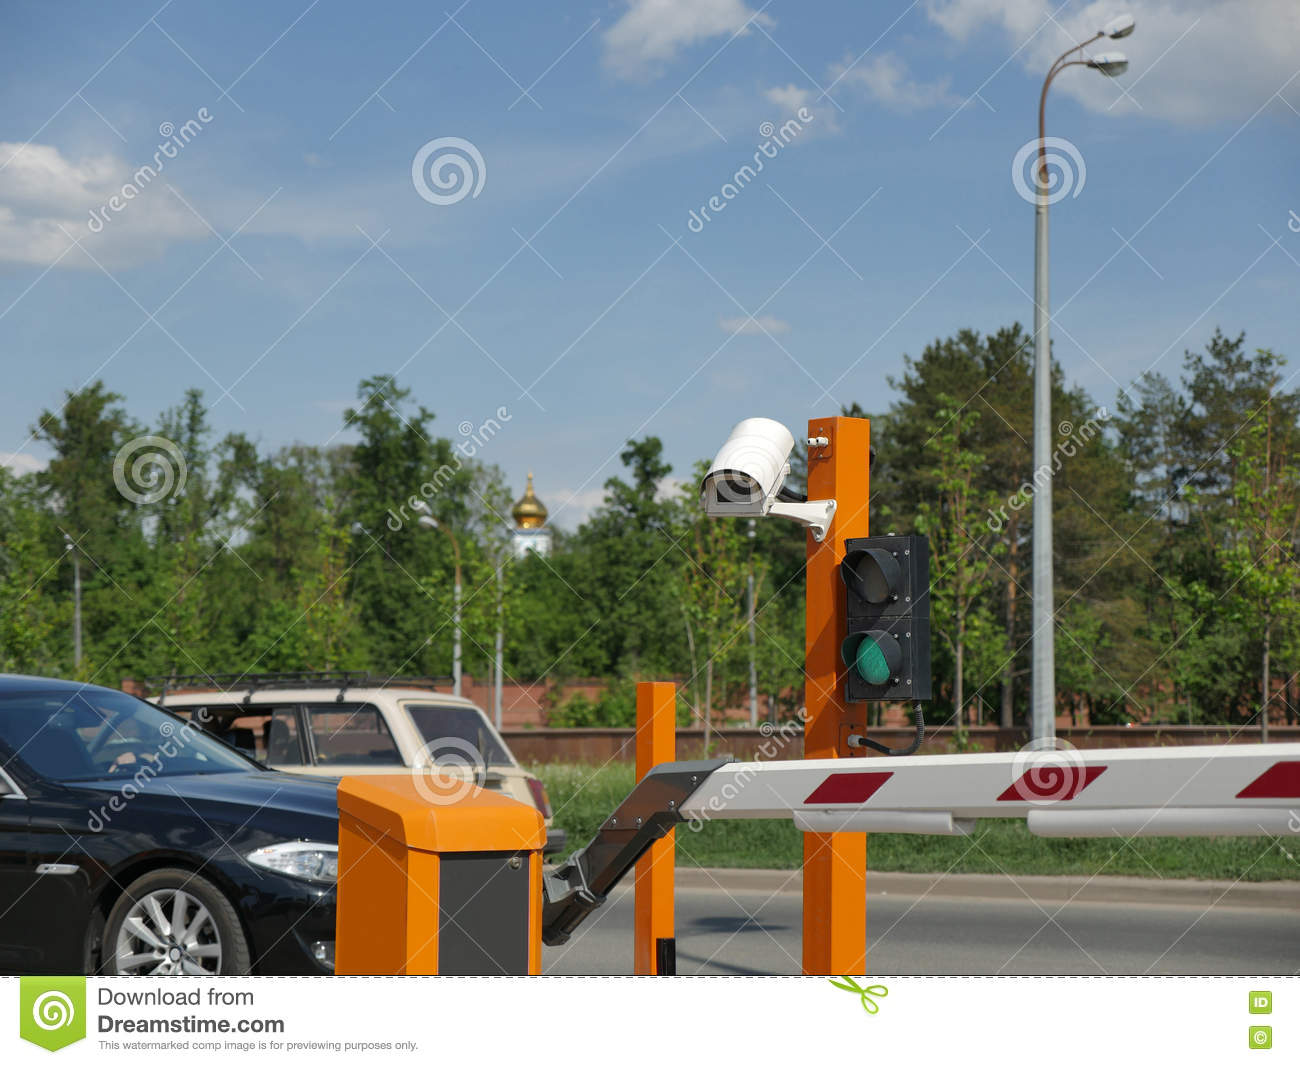 Automated Car Parking With CCTV. CCTV Camera License Plate. Stock ...